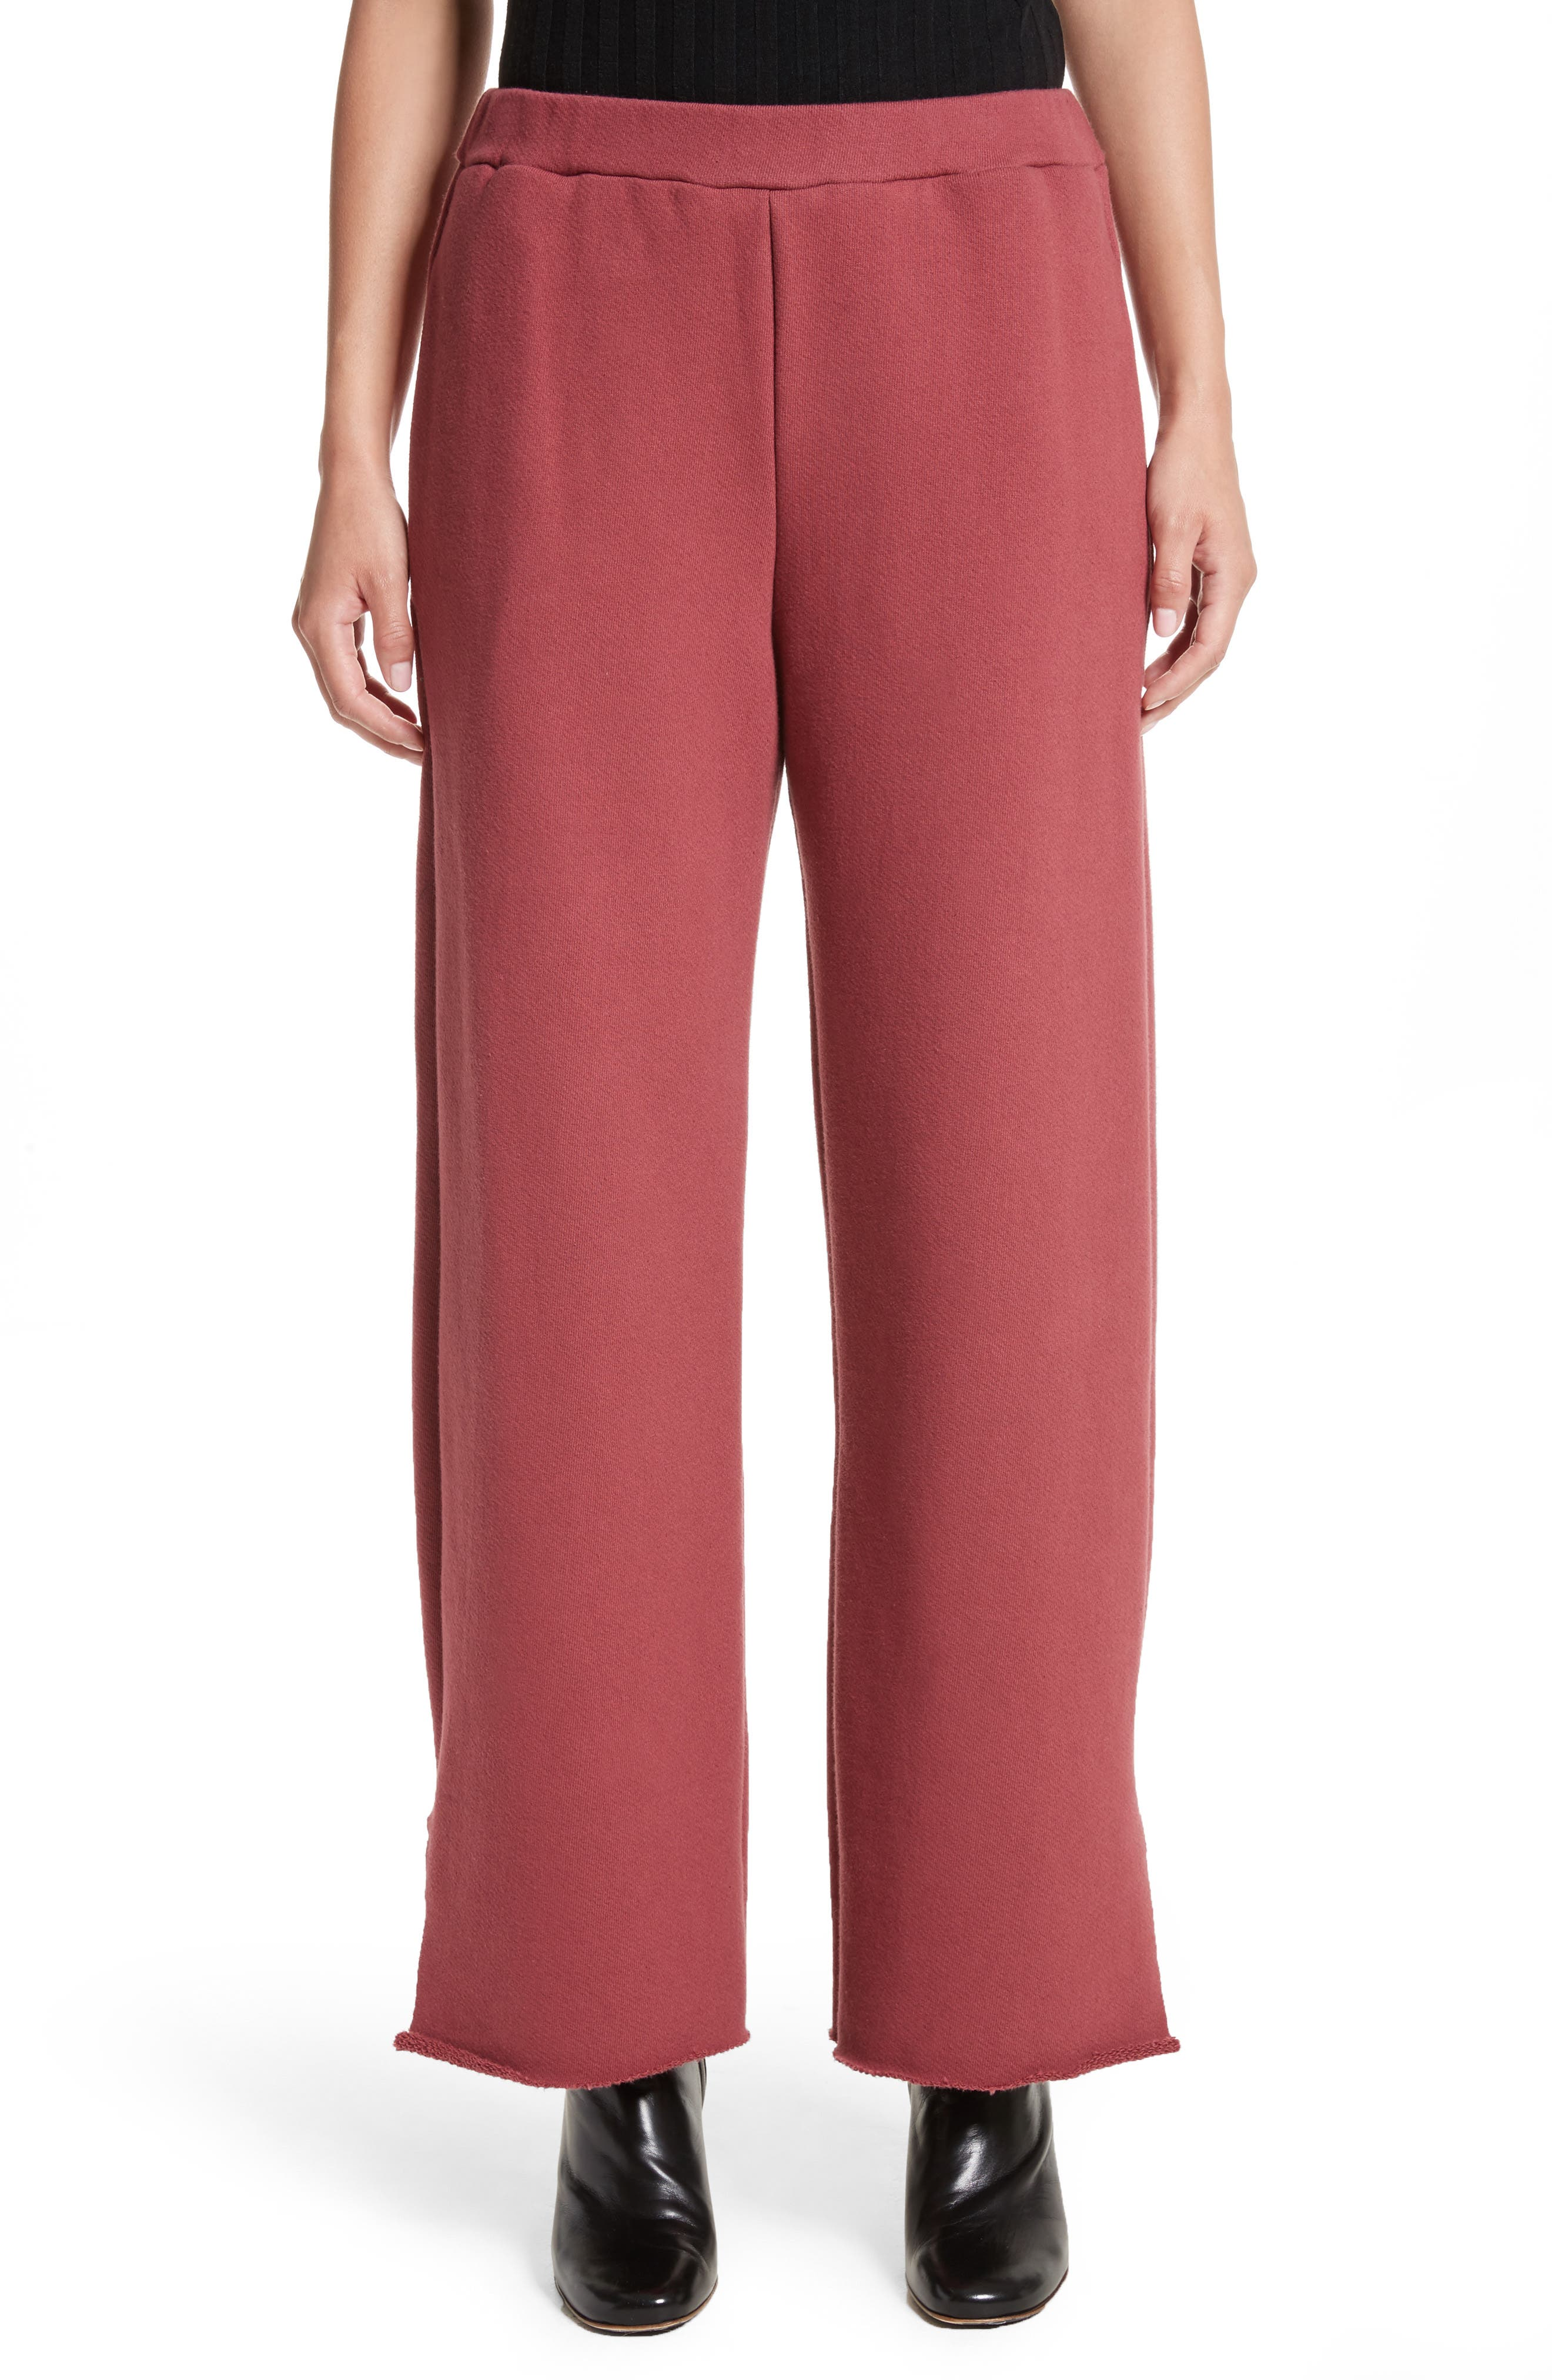 Simon Miller Canal French Terry Sweatpants